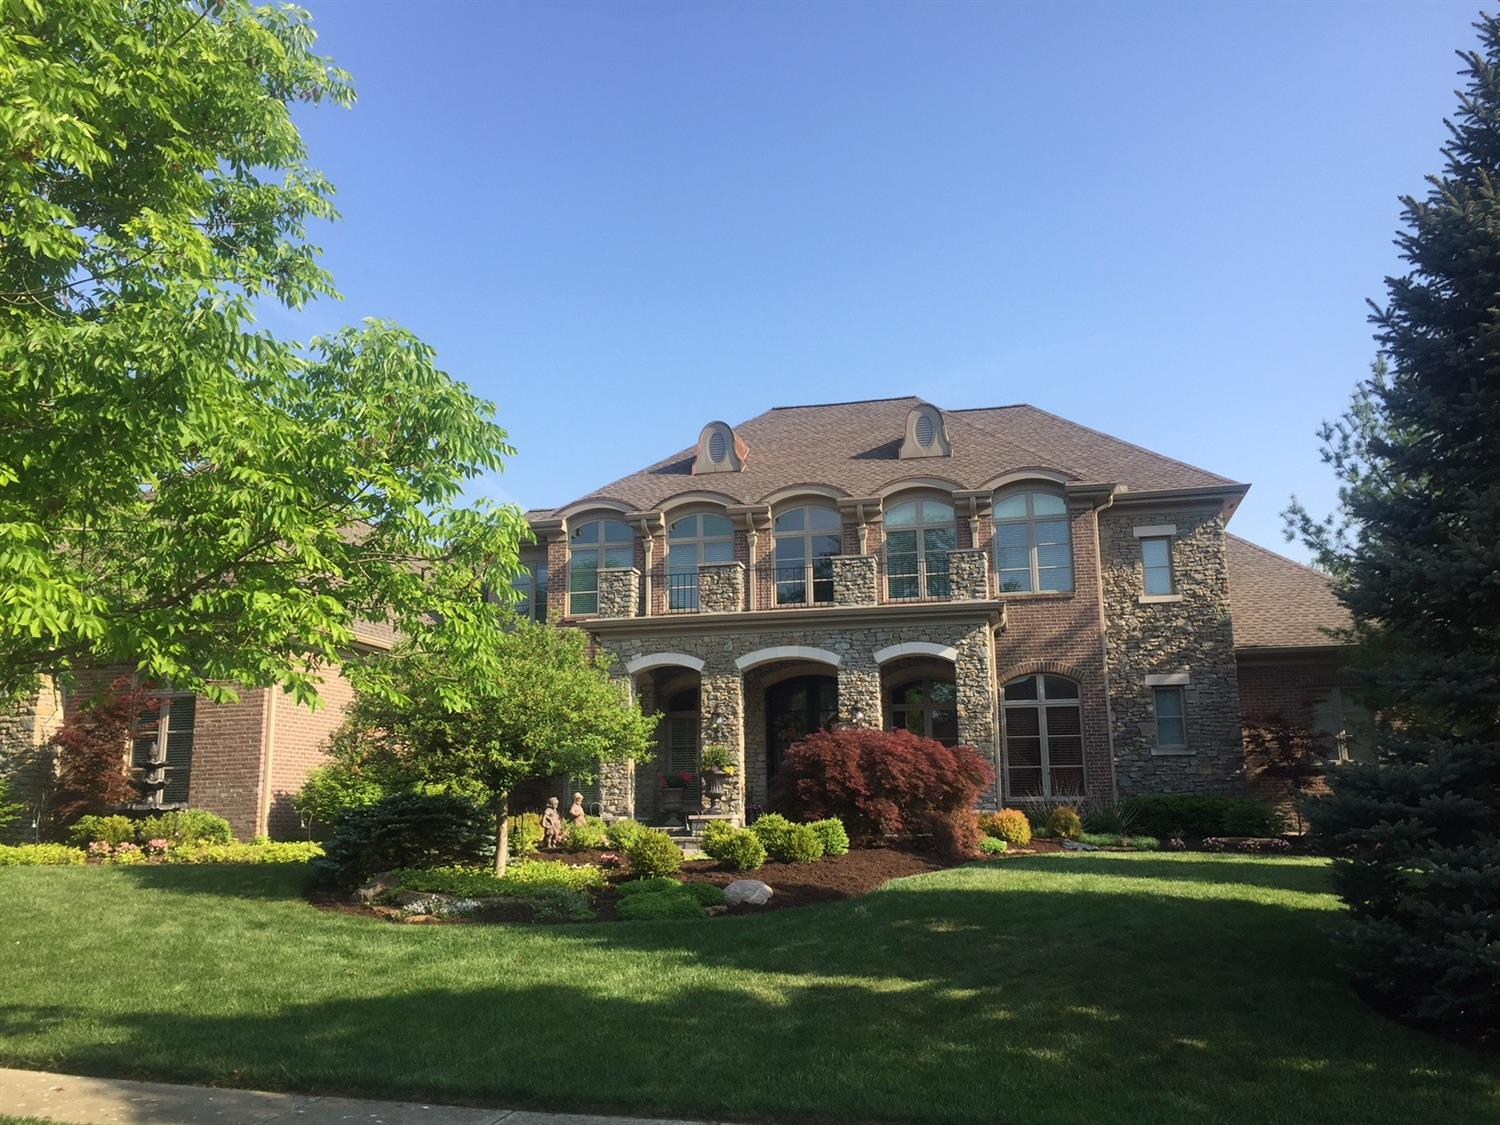 234 Vista Ridge Dr South Lebanon, OH